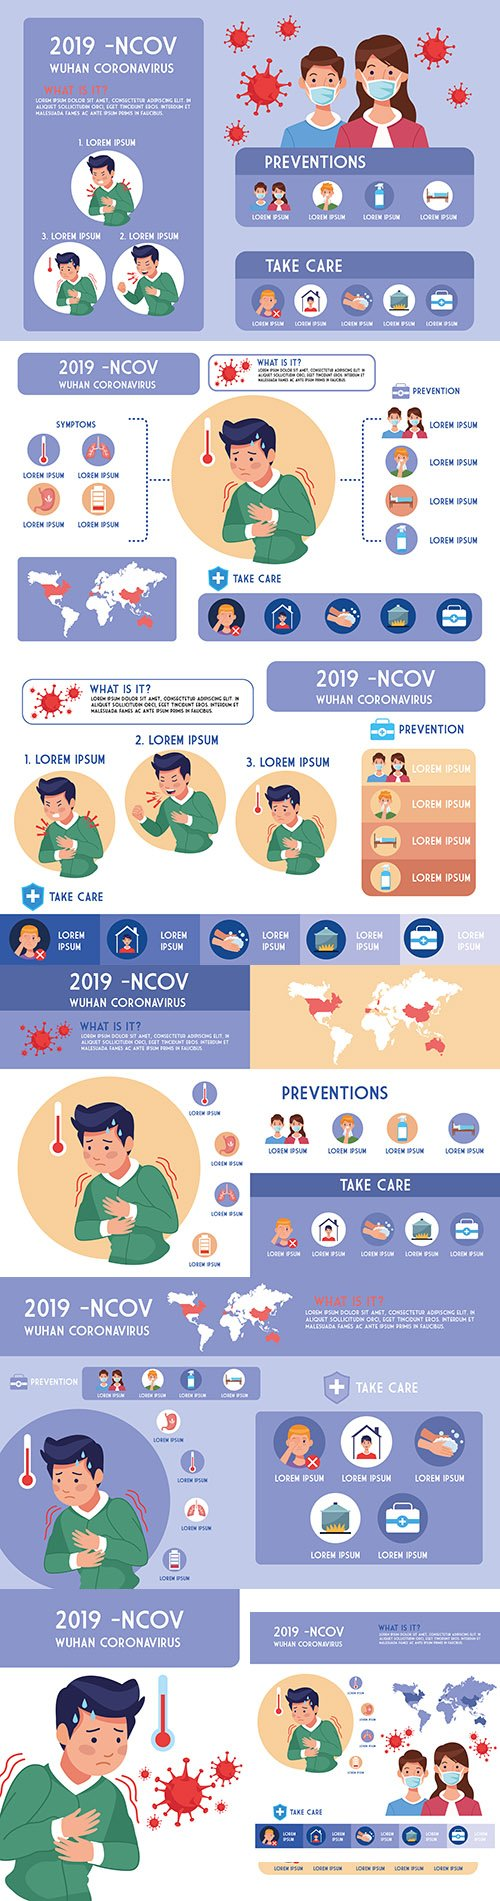 Covid19 pandemic design illustration infographics